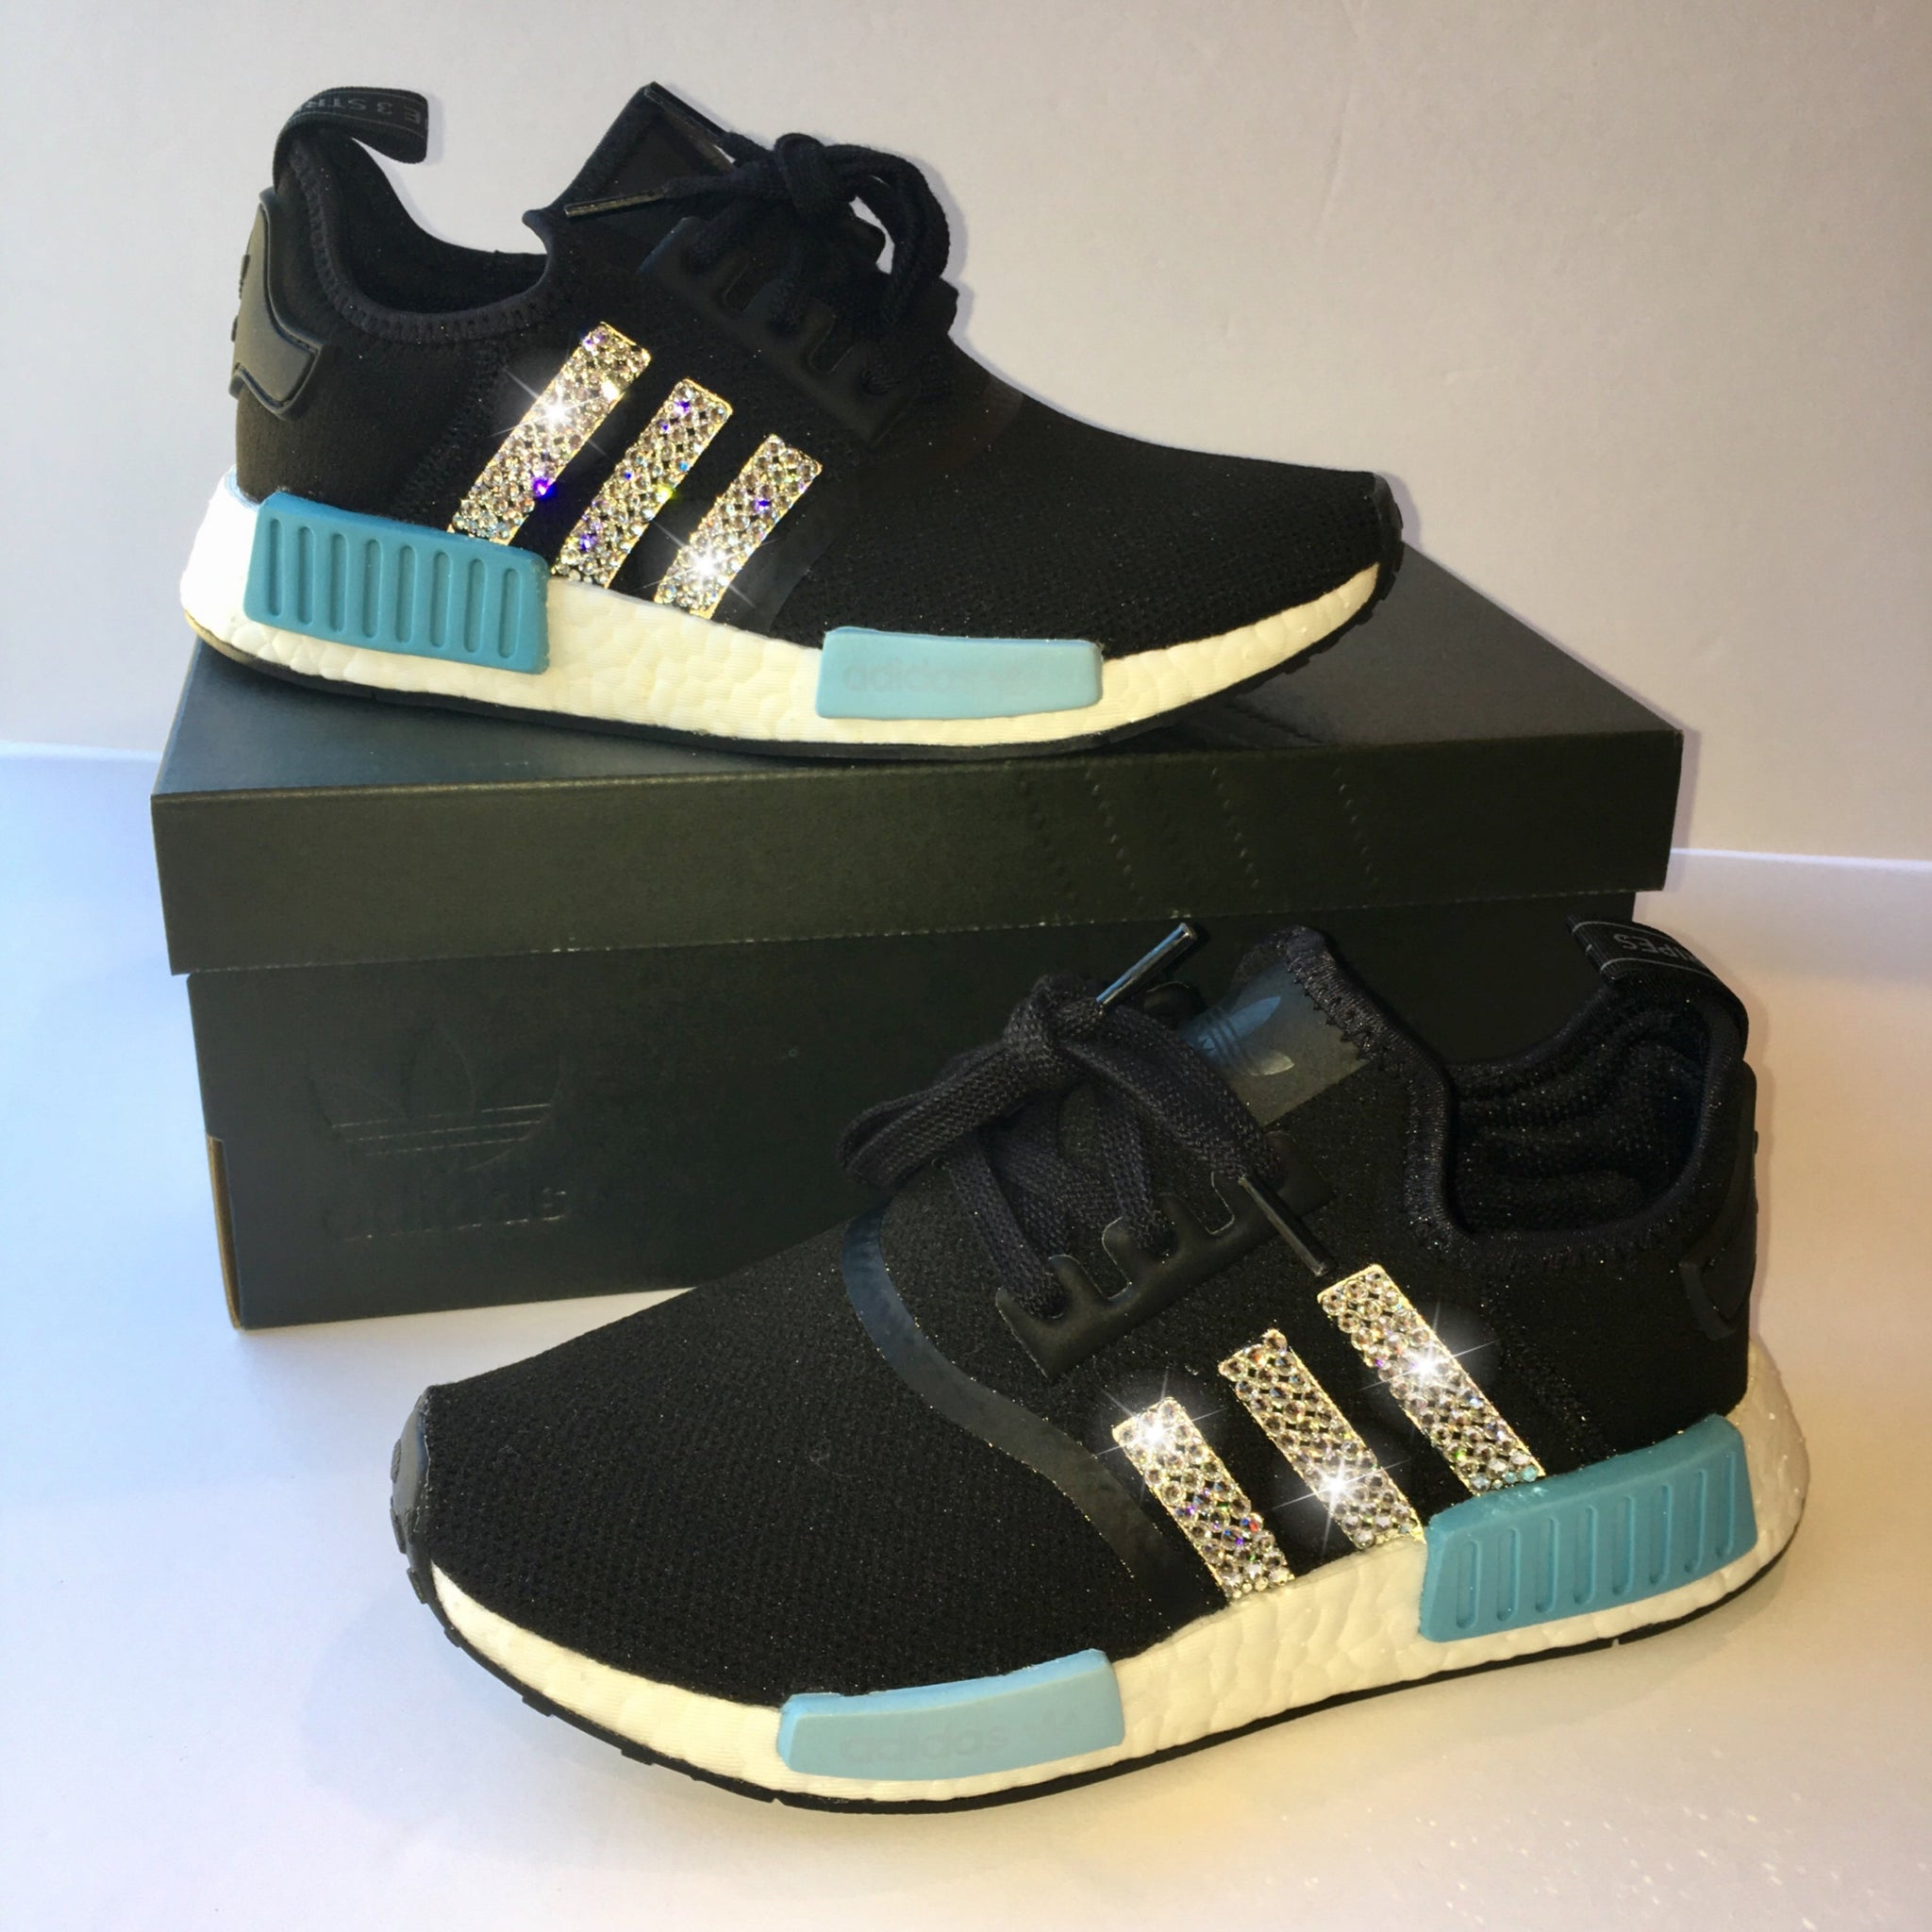 380e7ca01 NEW Bling Adidas NMD with Swarovski Crystals   Women s Originals NMD R1  Runners Casual Shoes   Black